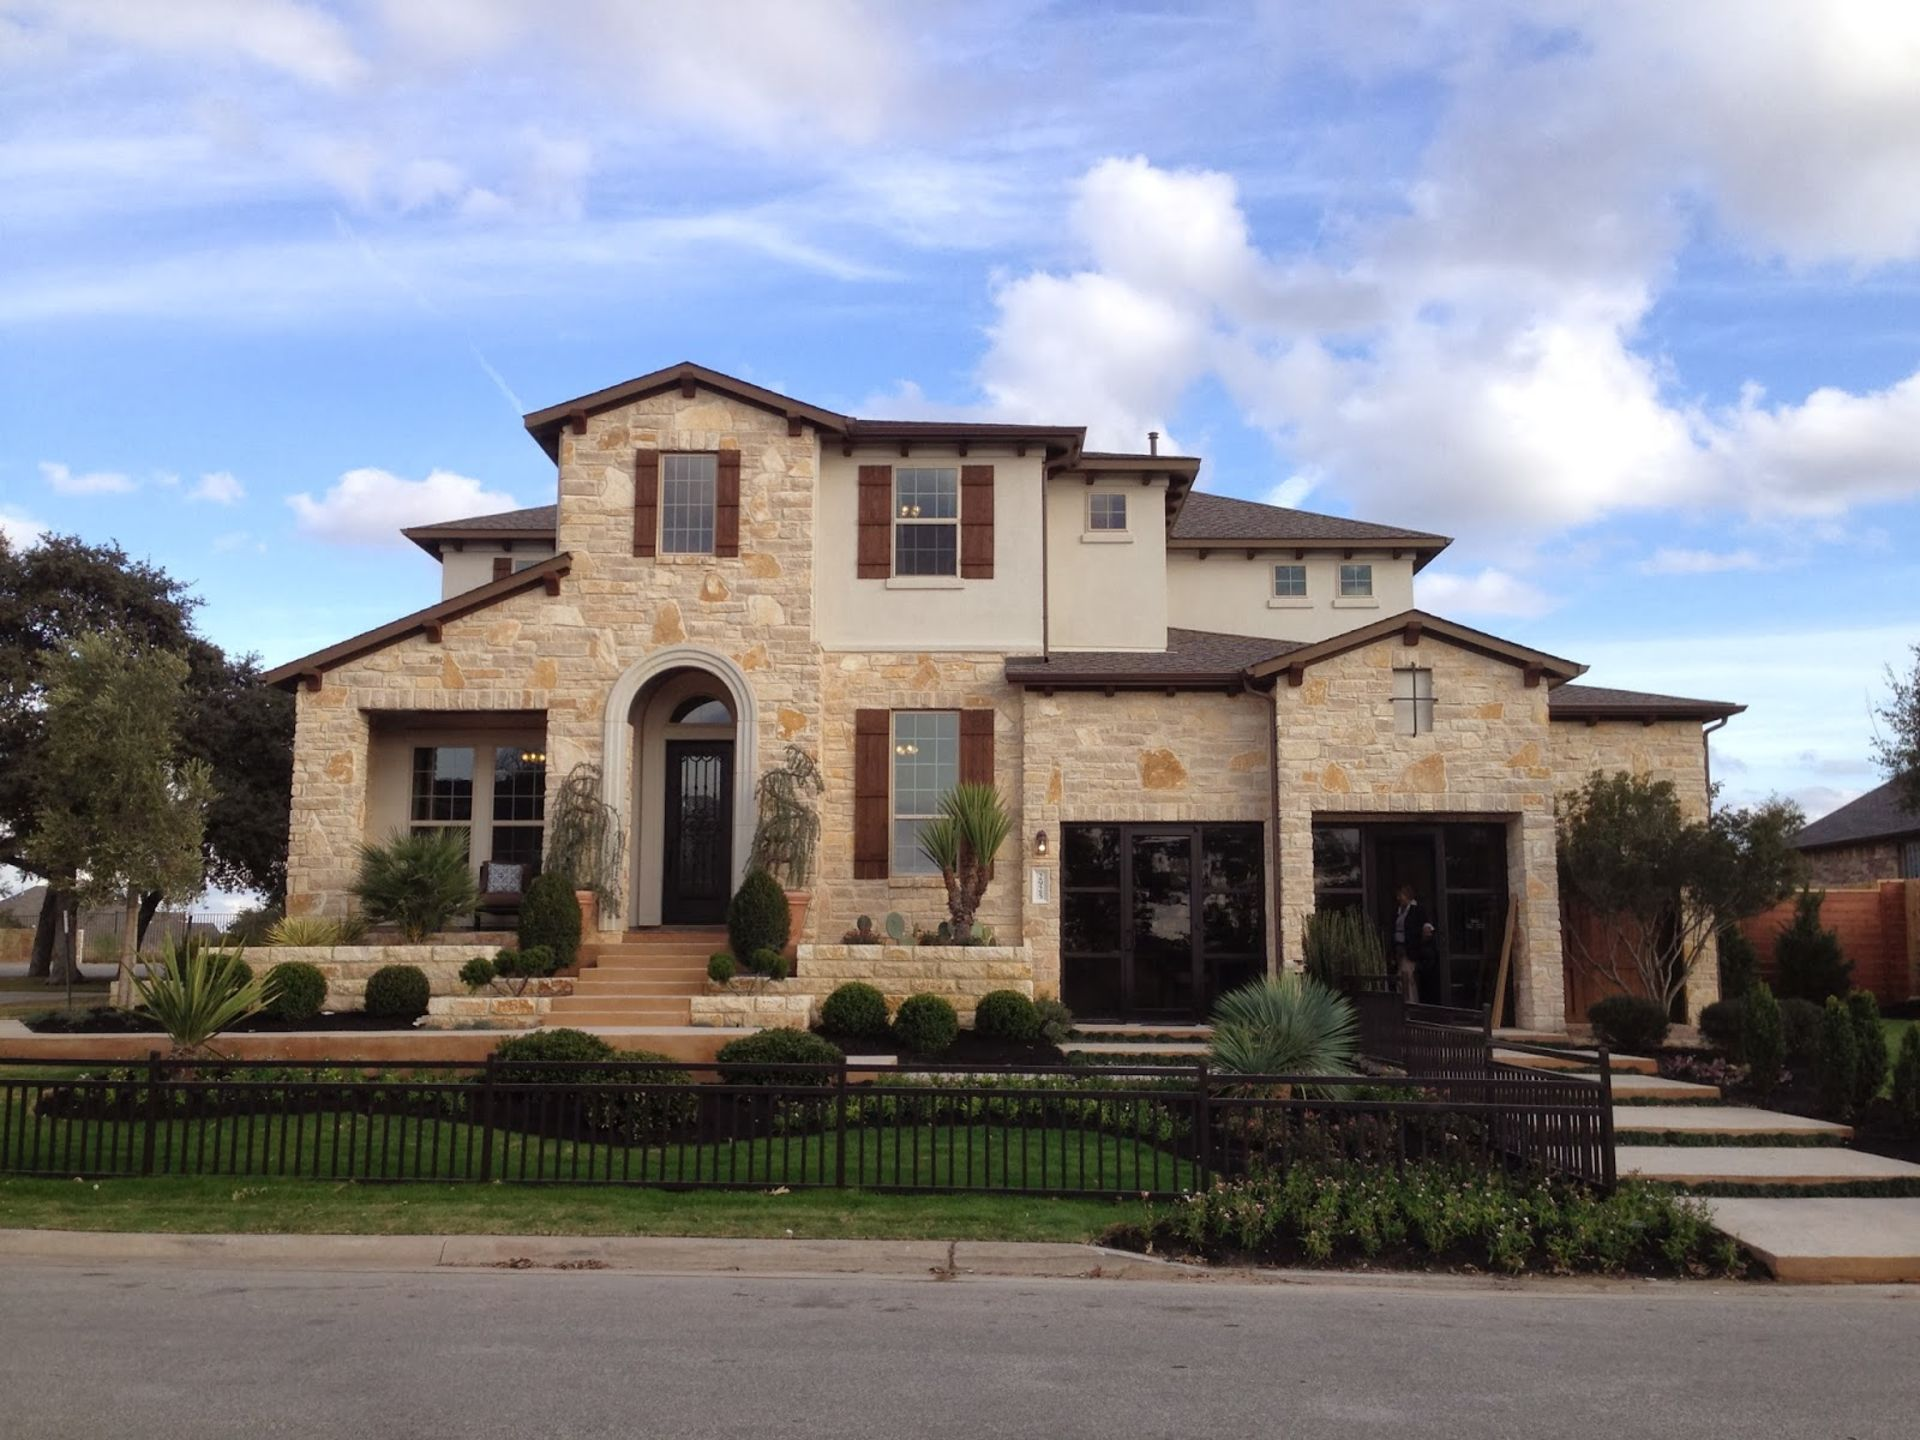 Cedar Park – Big City Appeal With Small Town Feel